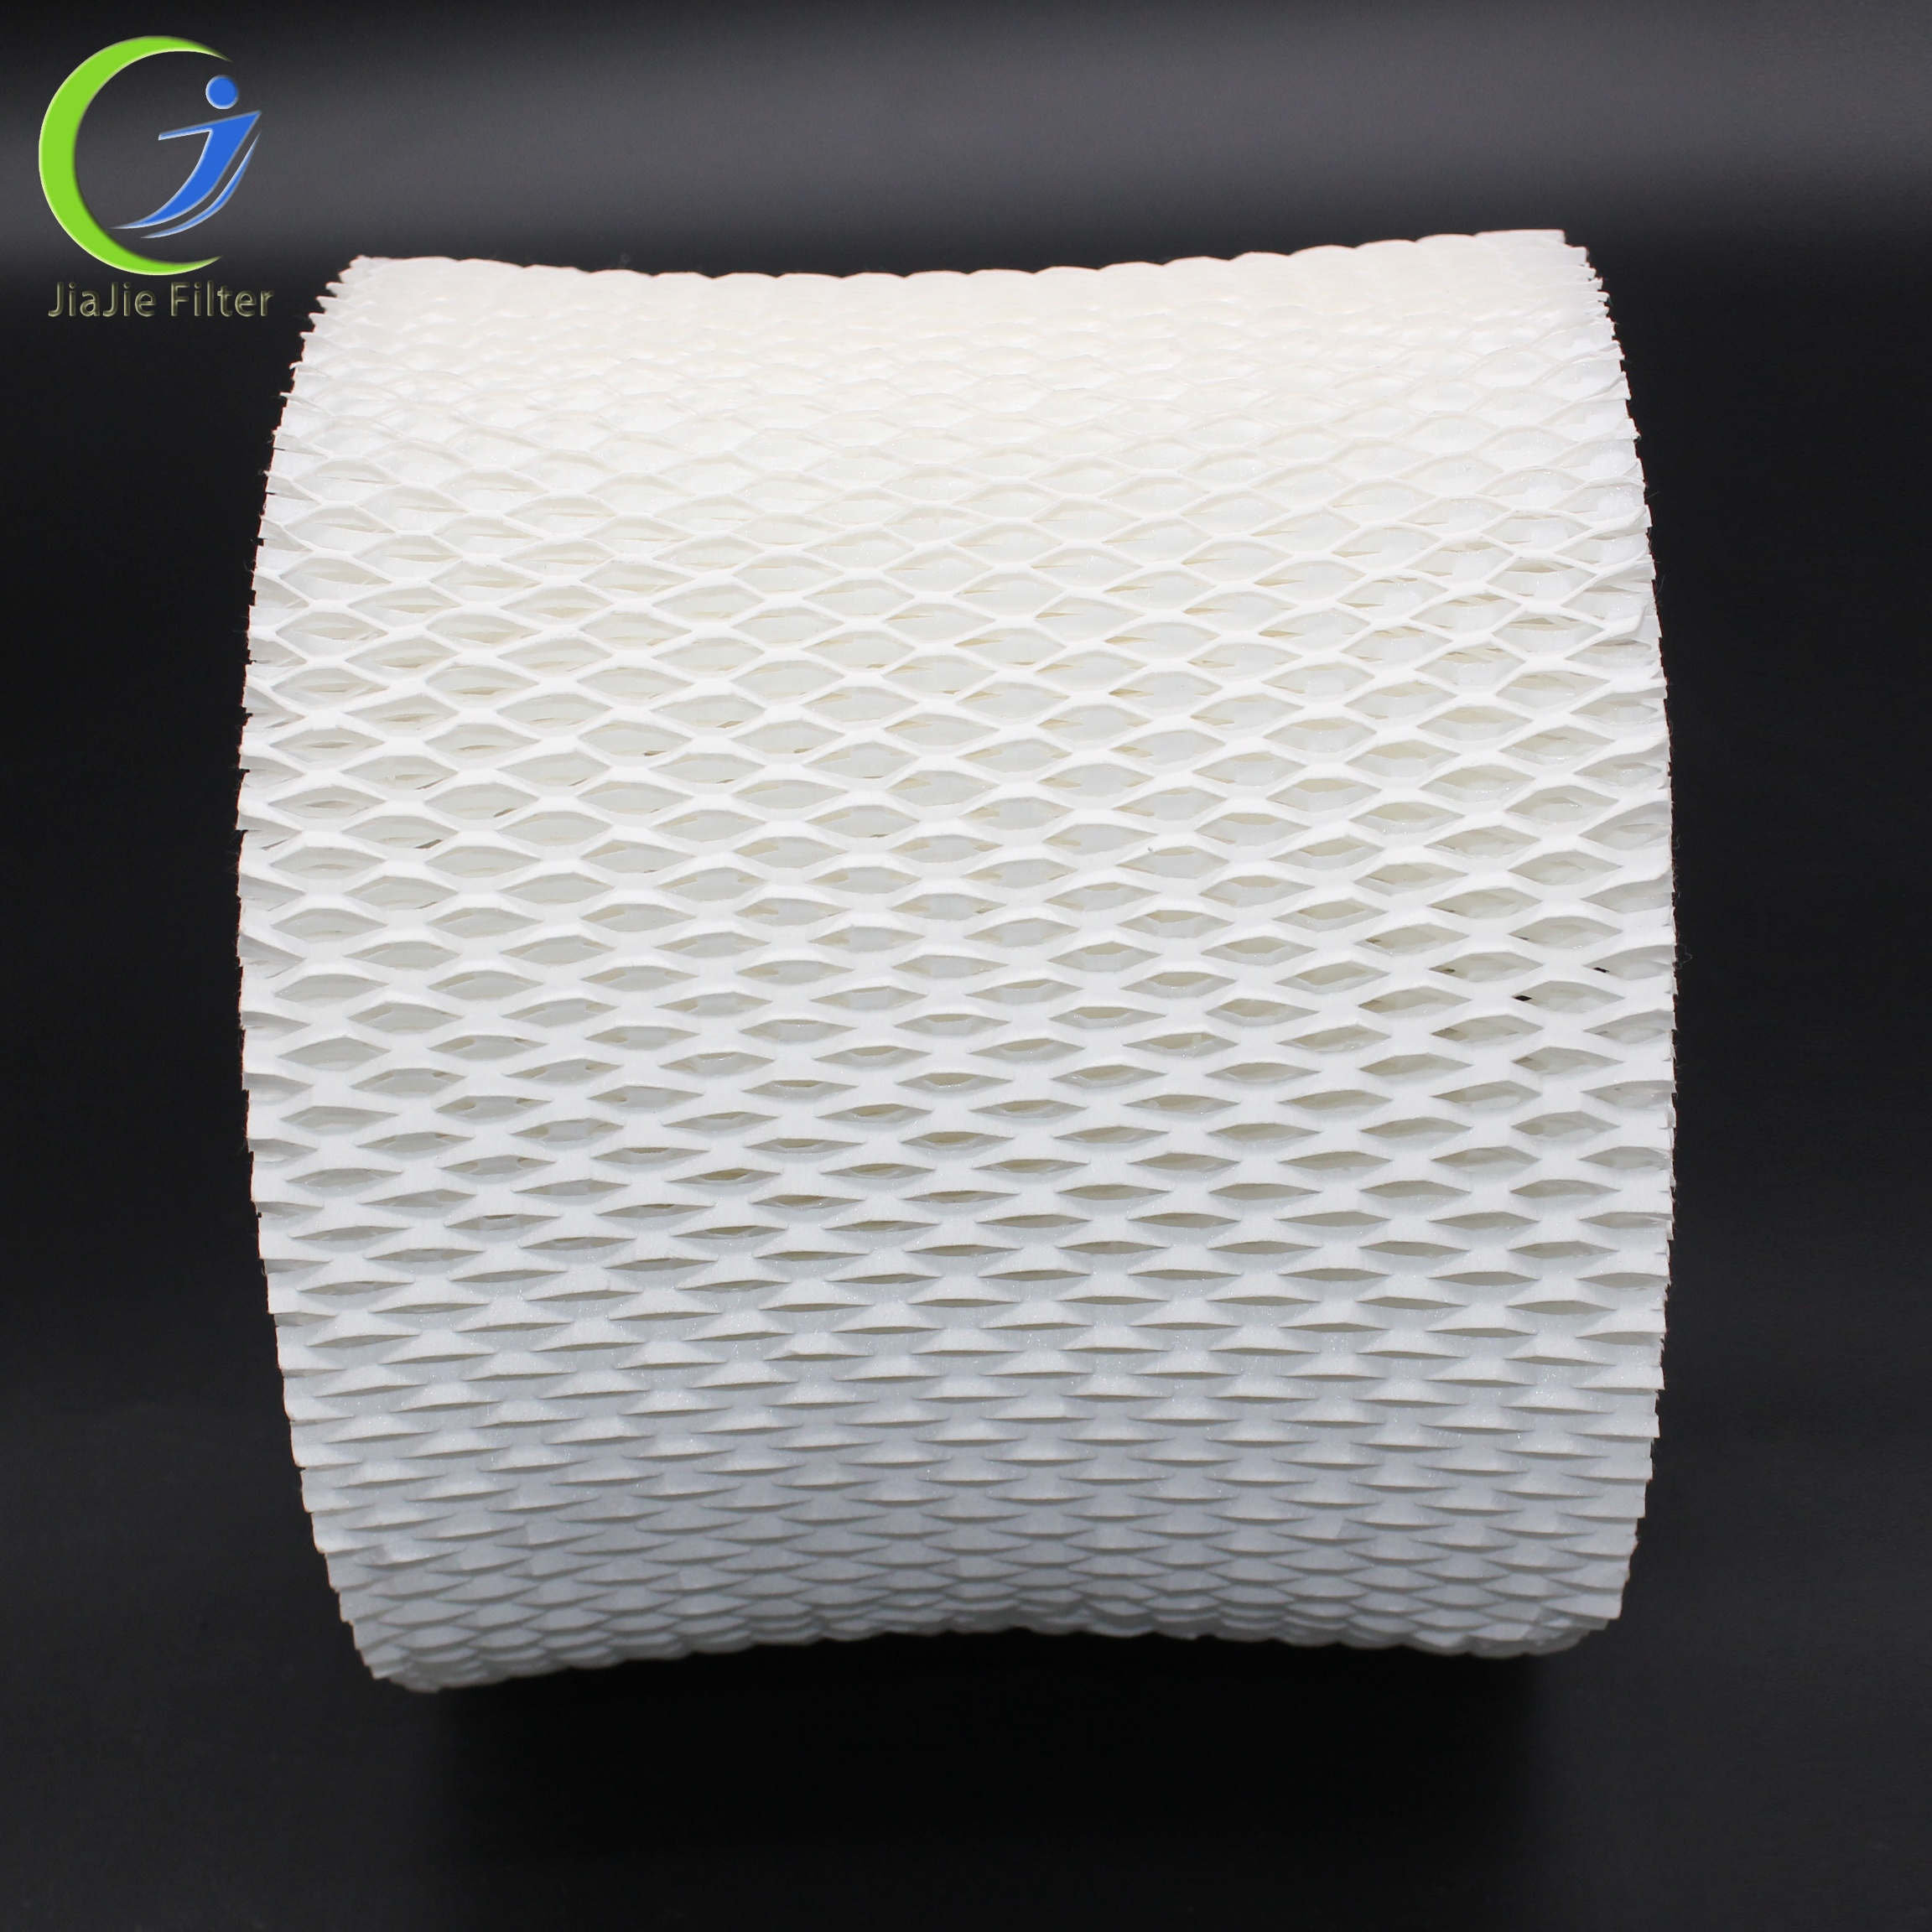 Air Humidifier Wick Filter for Philip- HU4801/HU4802/HU4803 Replacement Filter Adapter Humidifier Parts Accessory